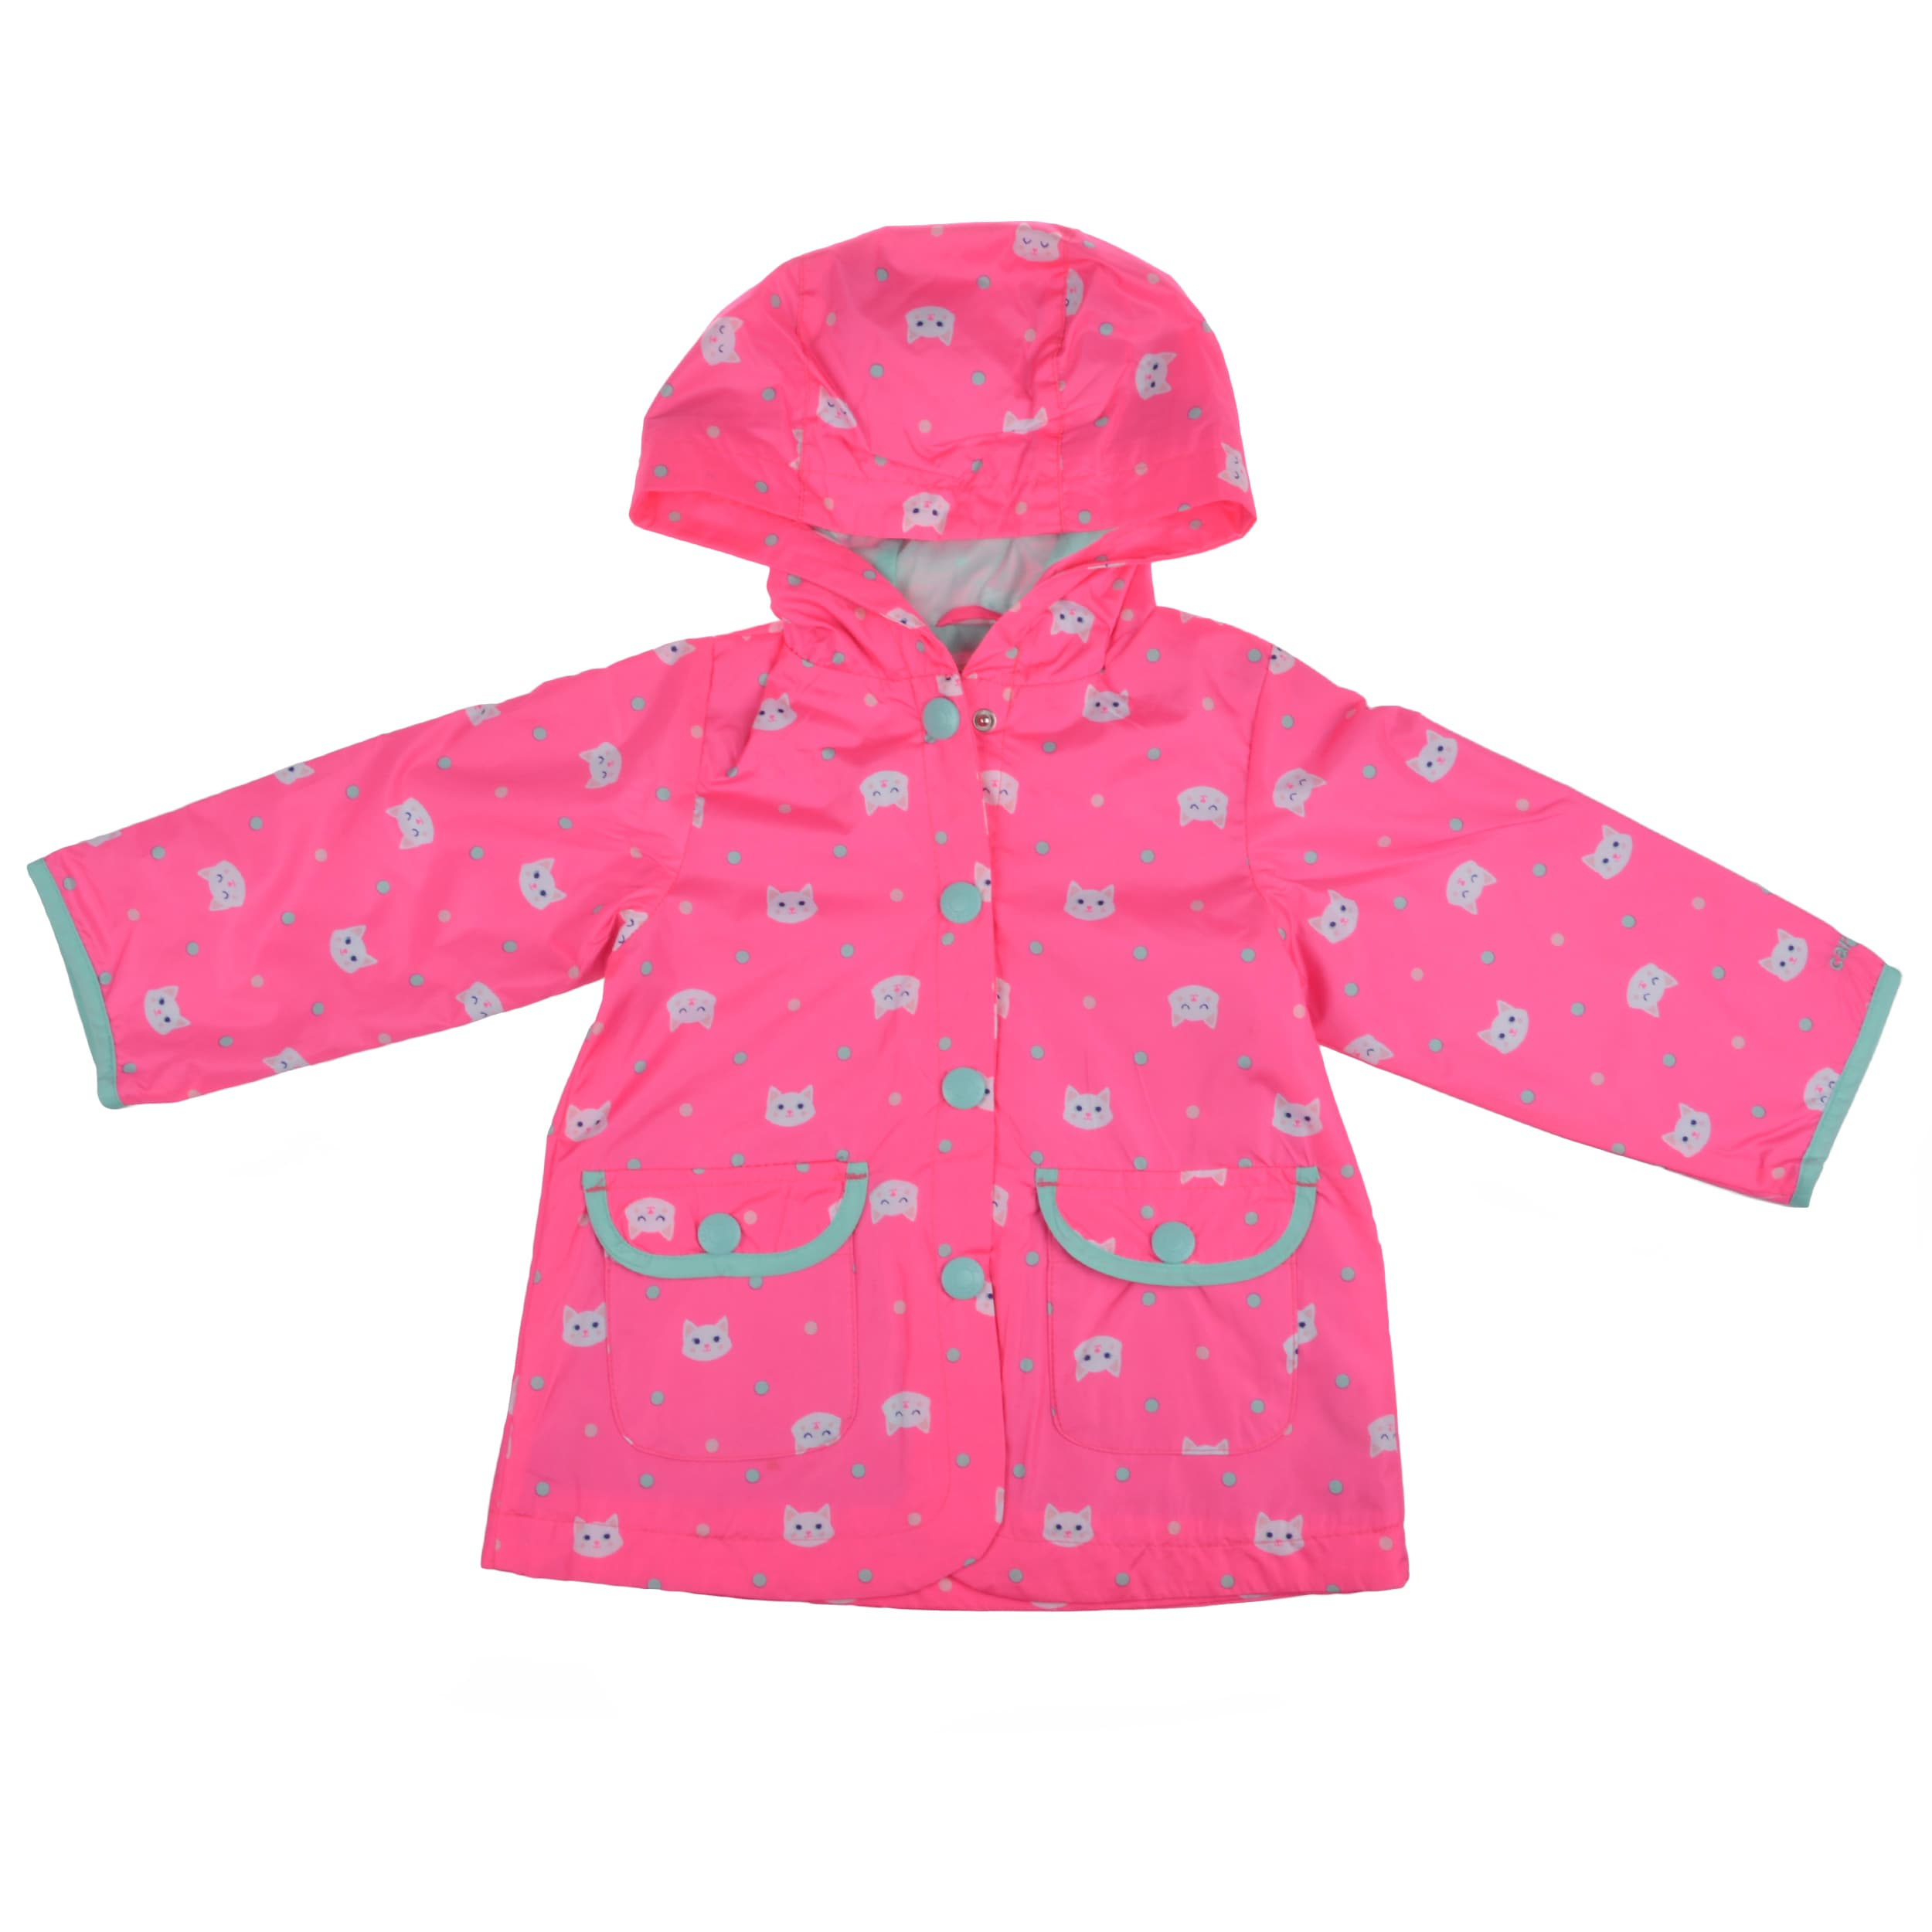 Carter's Girl's Pink Hooded Cat Print Rain Jacket